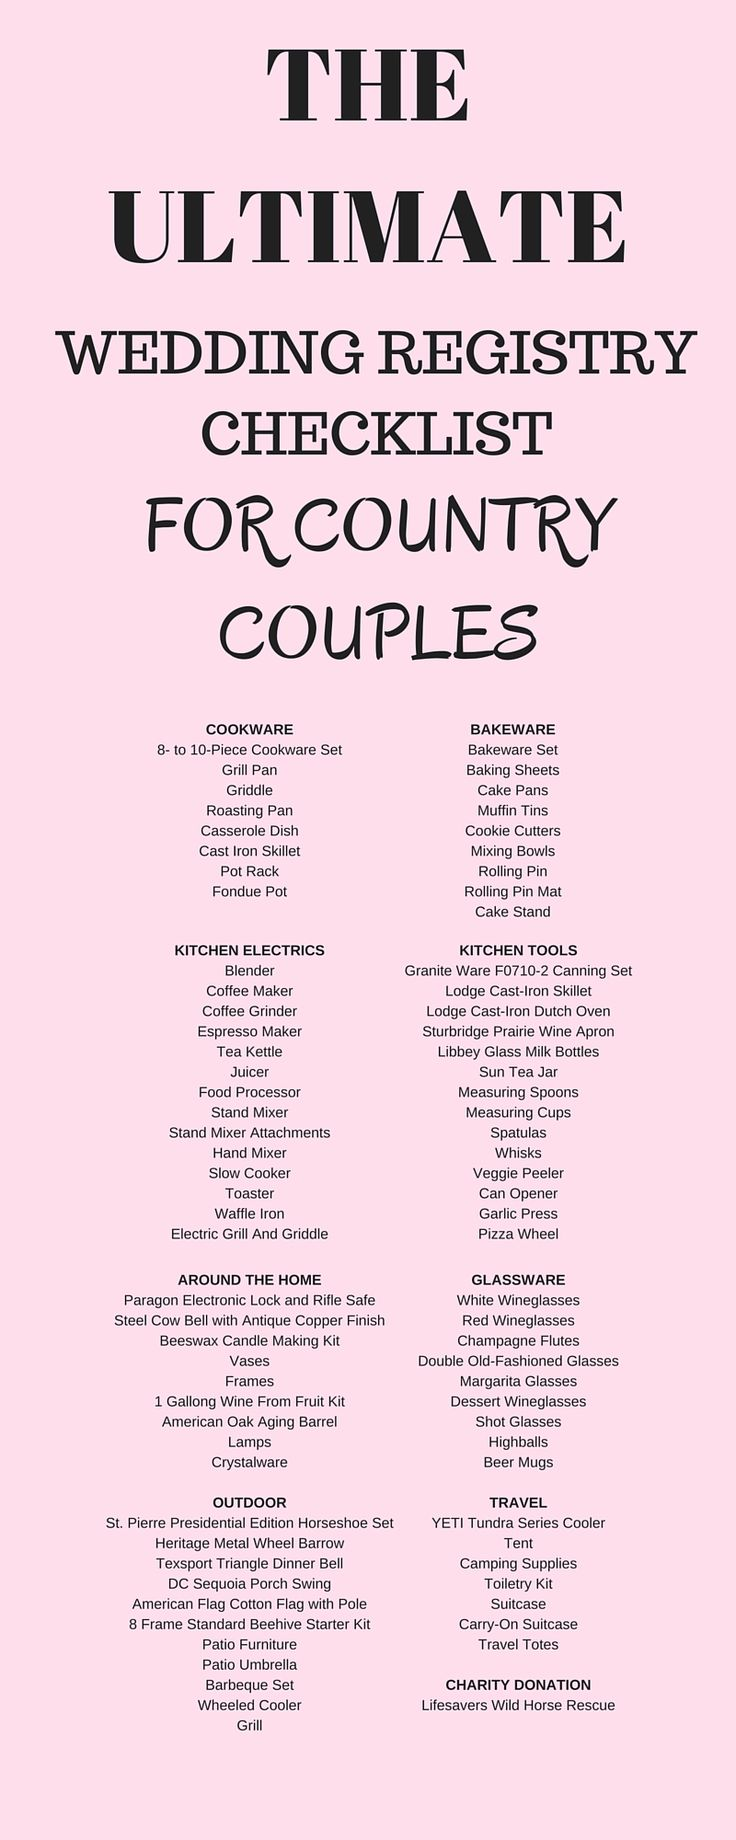 Best 25 wedding registry checklist ideas on pinterest wedding ultimate wedding registry checklist for country couples junglespirit Images